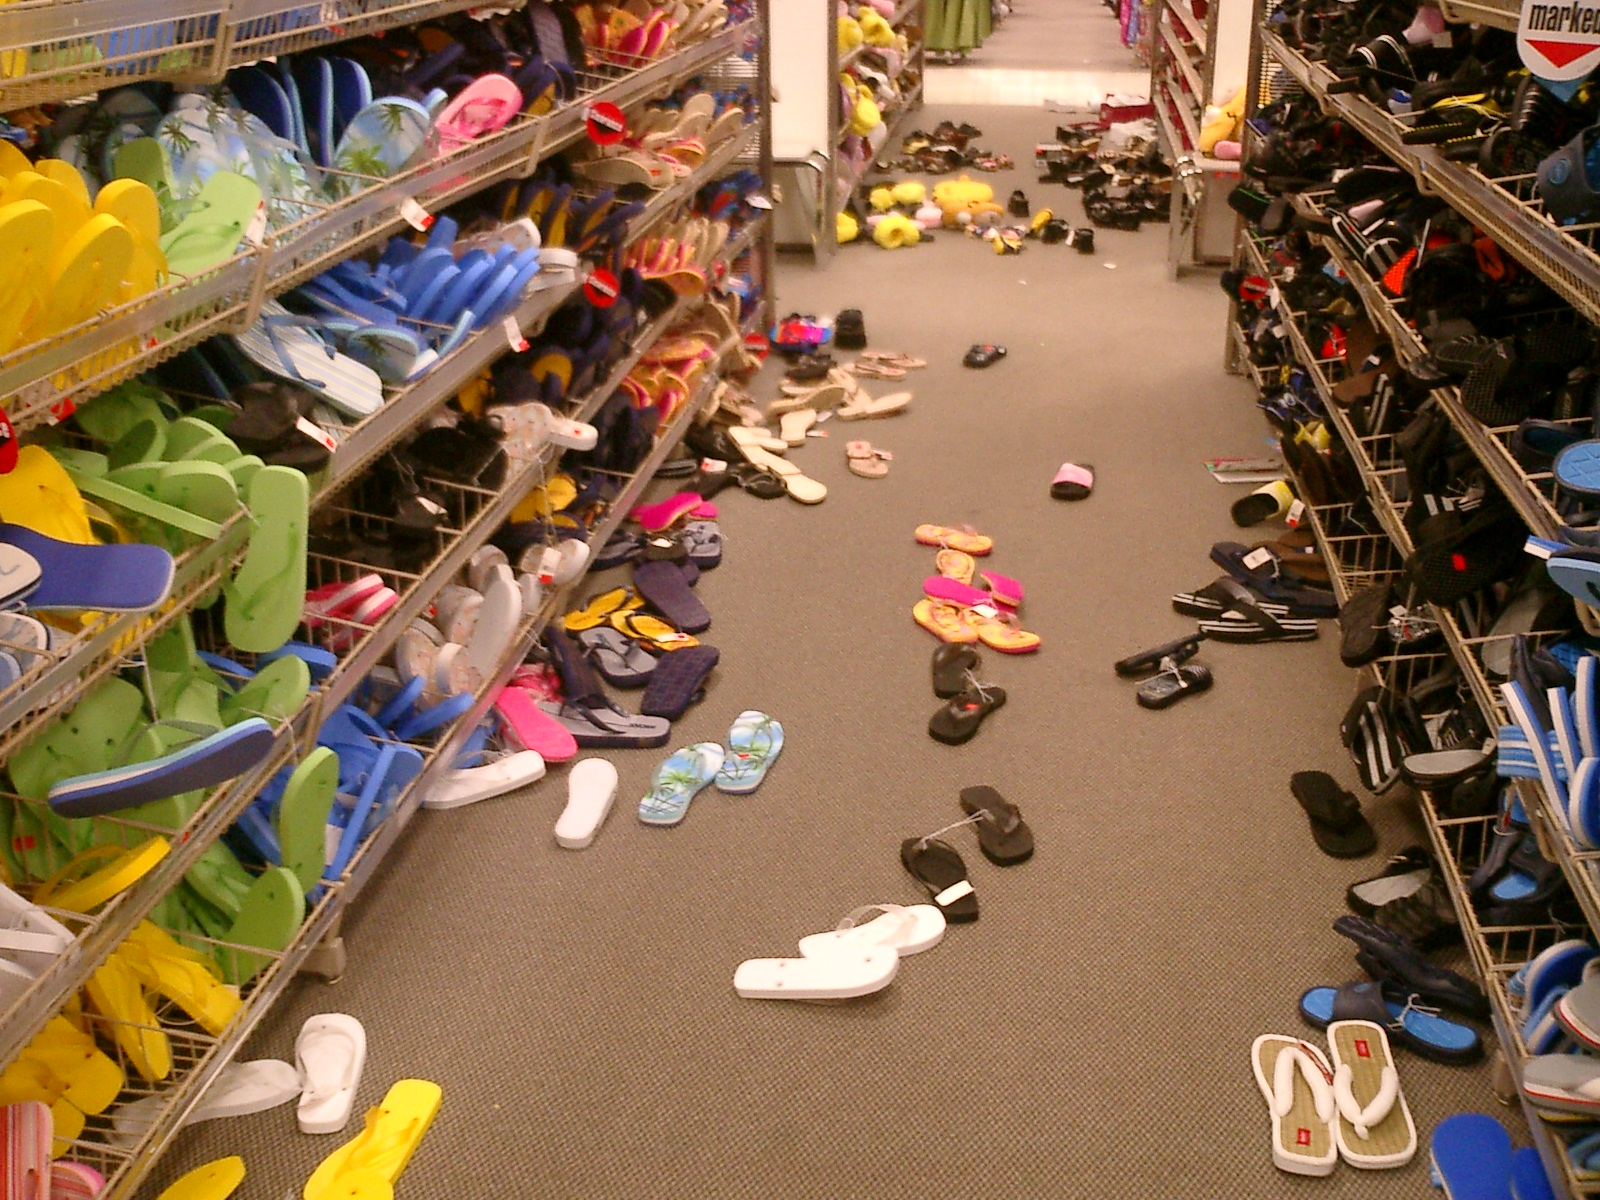 Messy_shoe_aisle_at_Nashville_Target_store